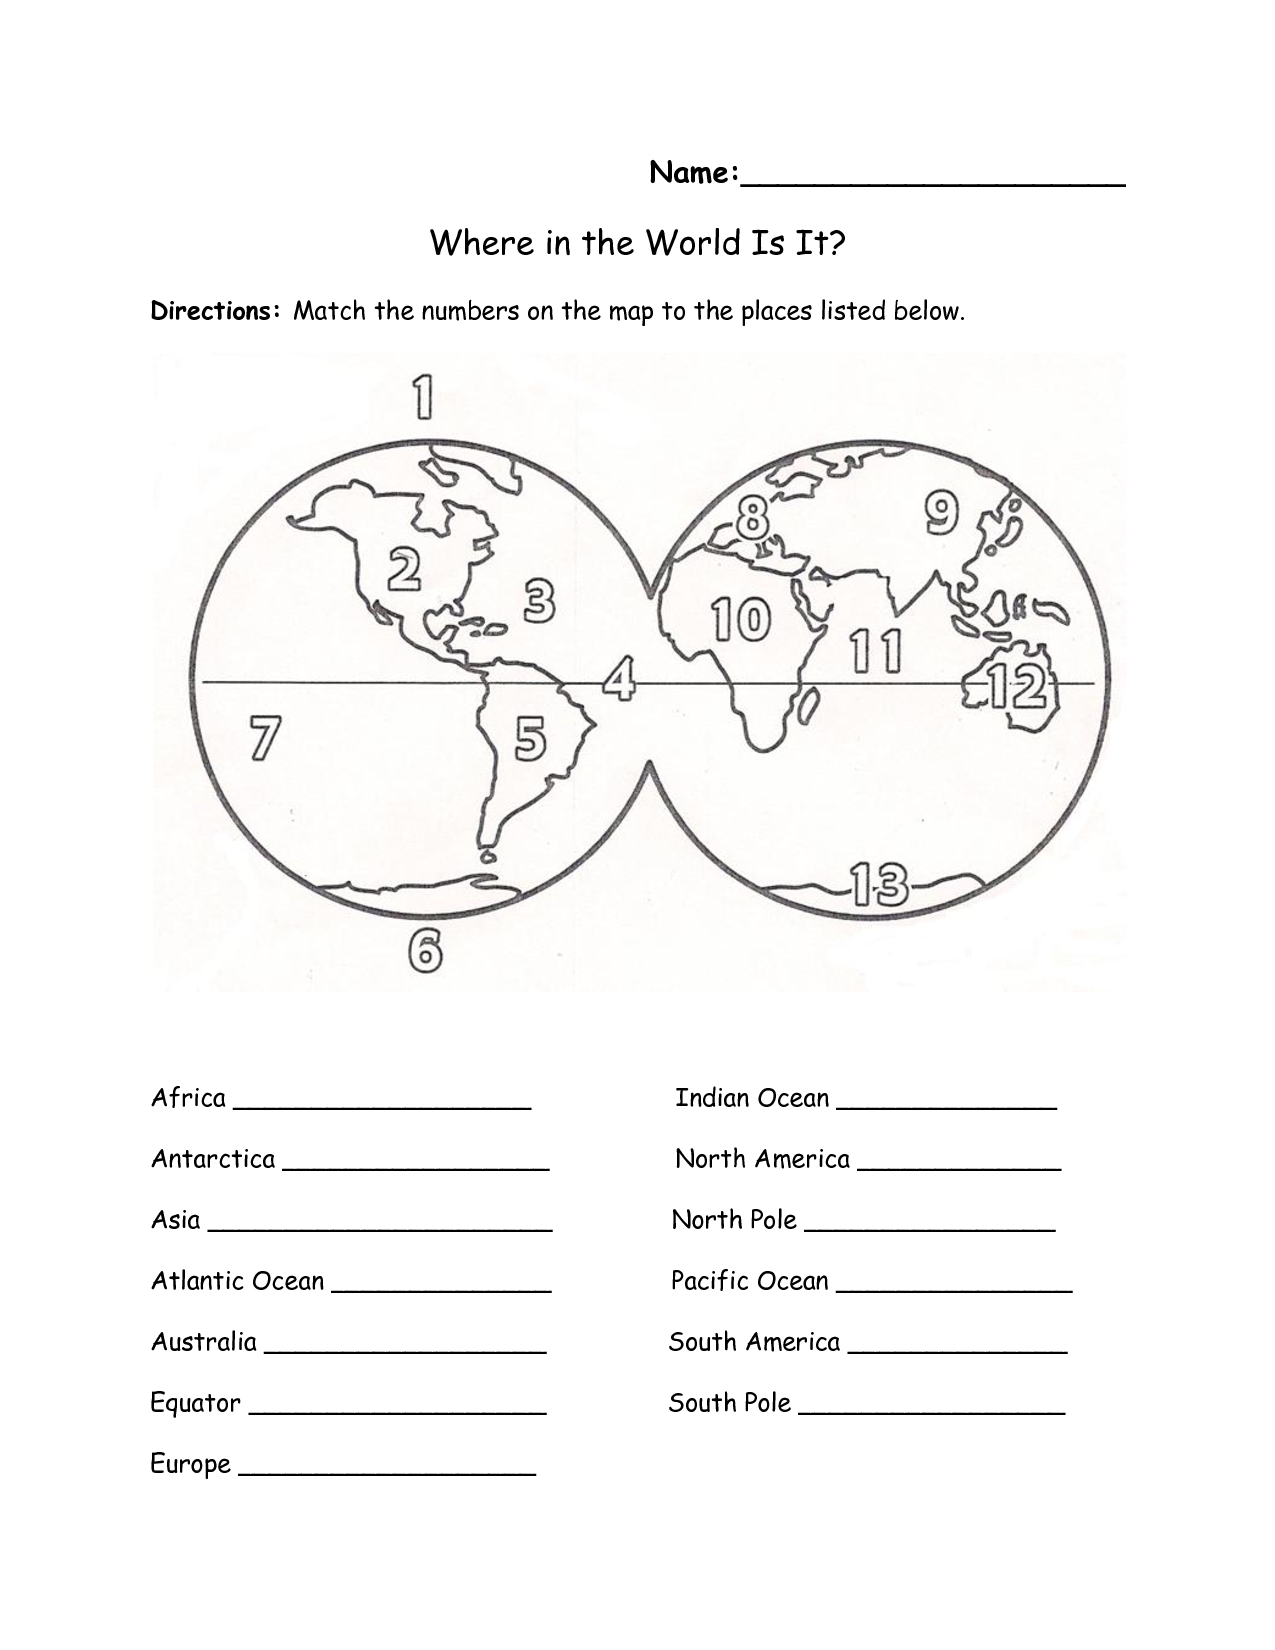 Worksheets World Geography Worksheets High School printables continents and oceans of the world worksheet education worksheet